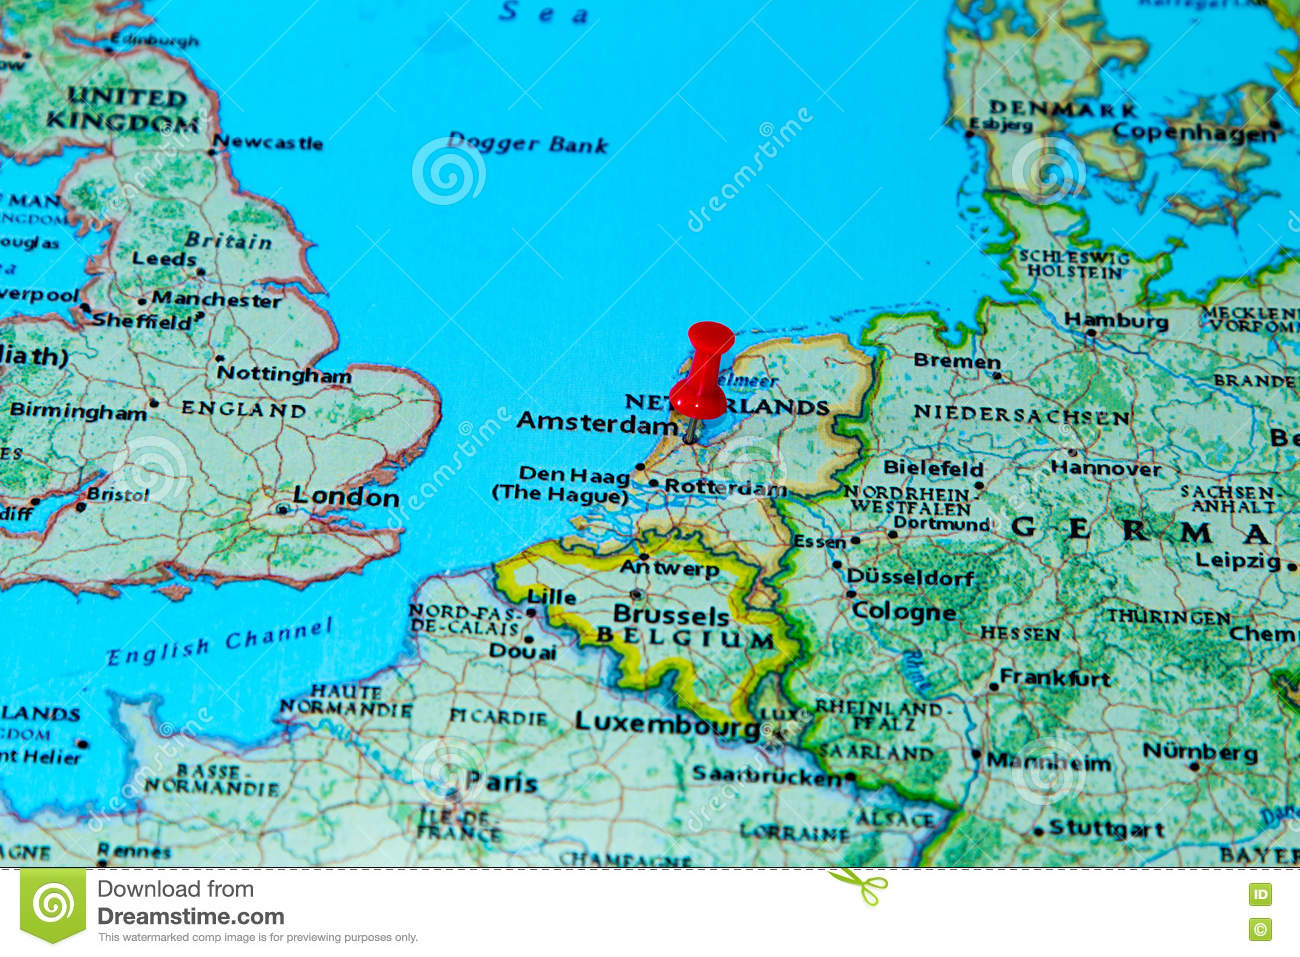 Amsterdam Netherlands Pinned On A Map Of Europe Stock Image